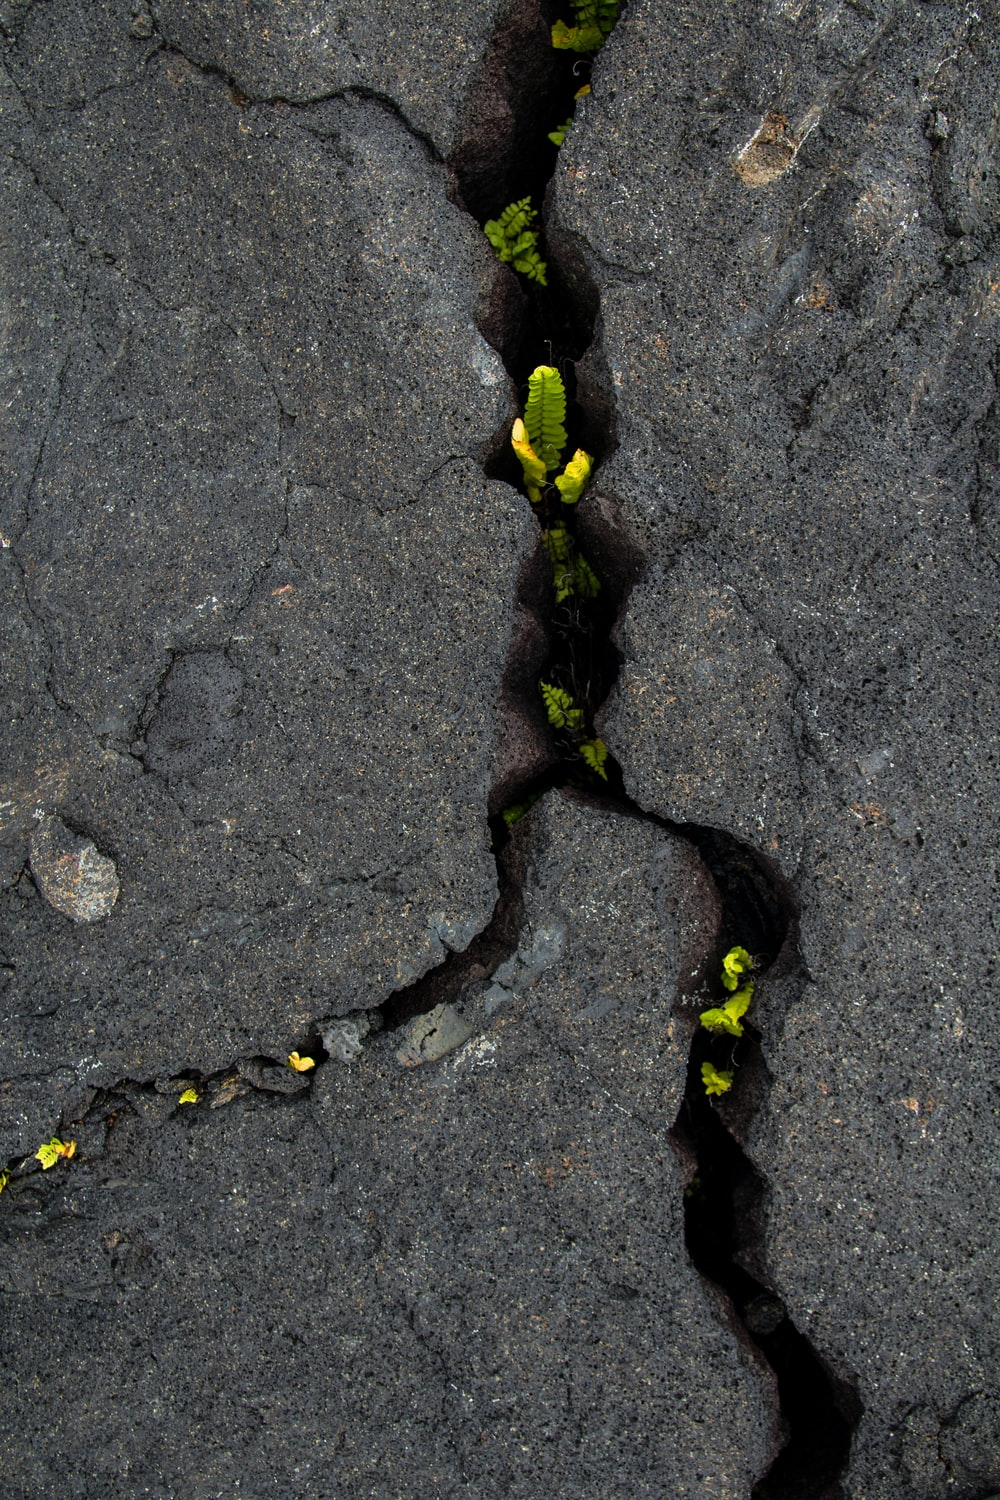 black and yellow snake on gray concrete pavement